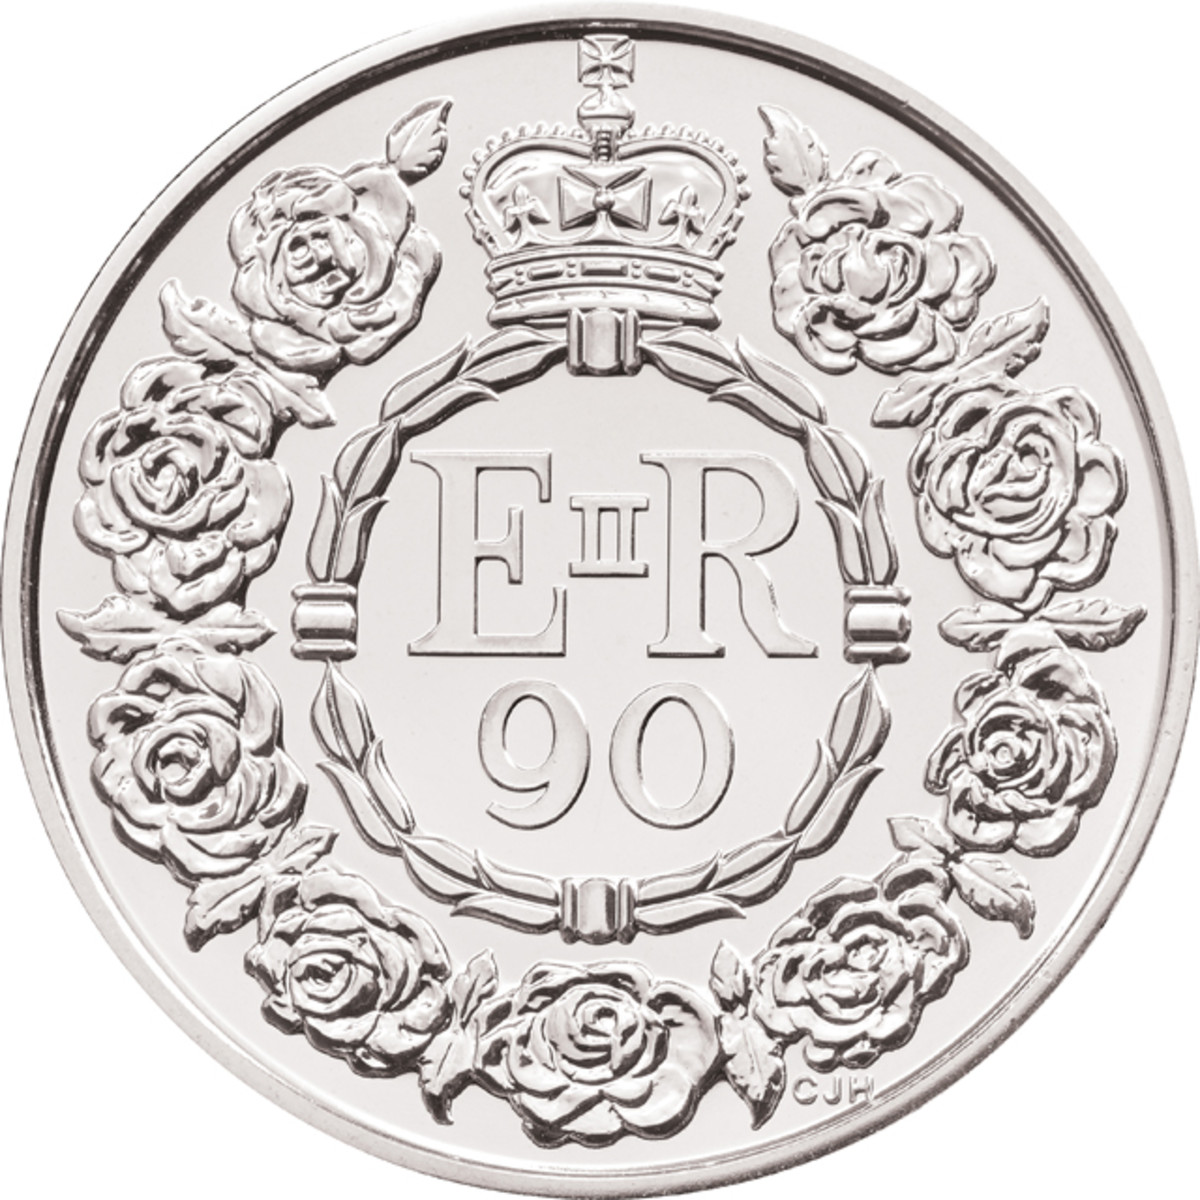 The reverse of the £5 coin that will celebrate the queen's 90th birthday on April 21 next year. The design by Christopher Hobbs is inspired by the heraldic rose of England and the queen's love of flowers.